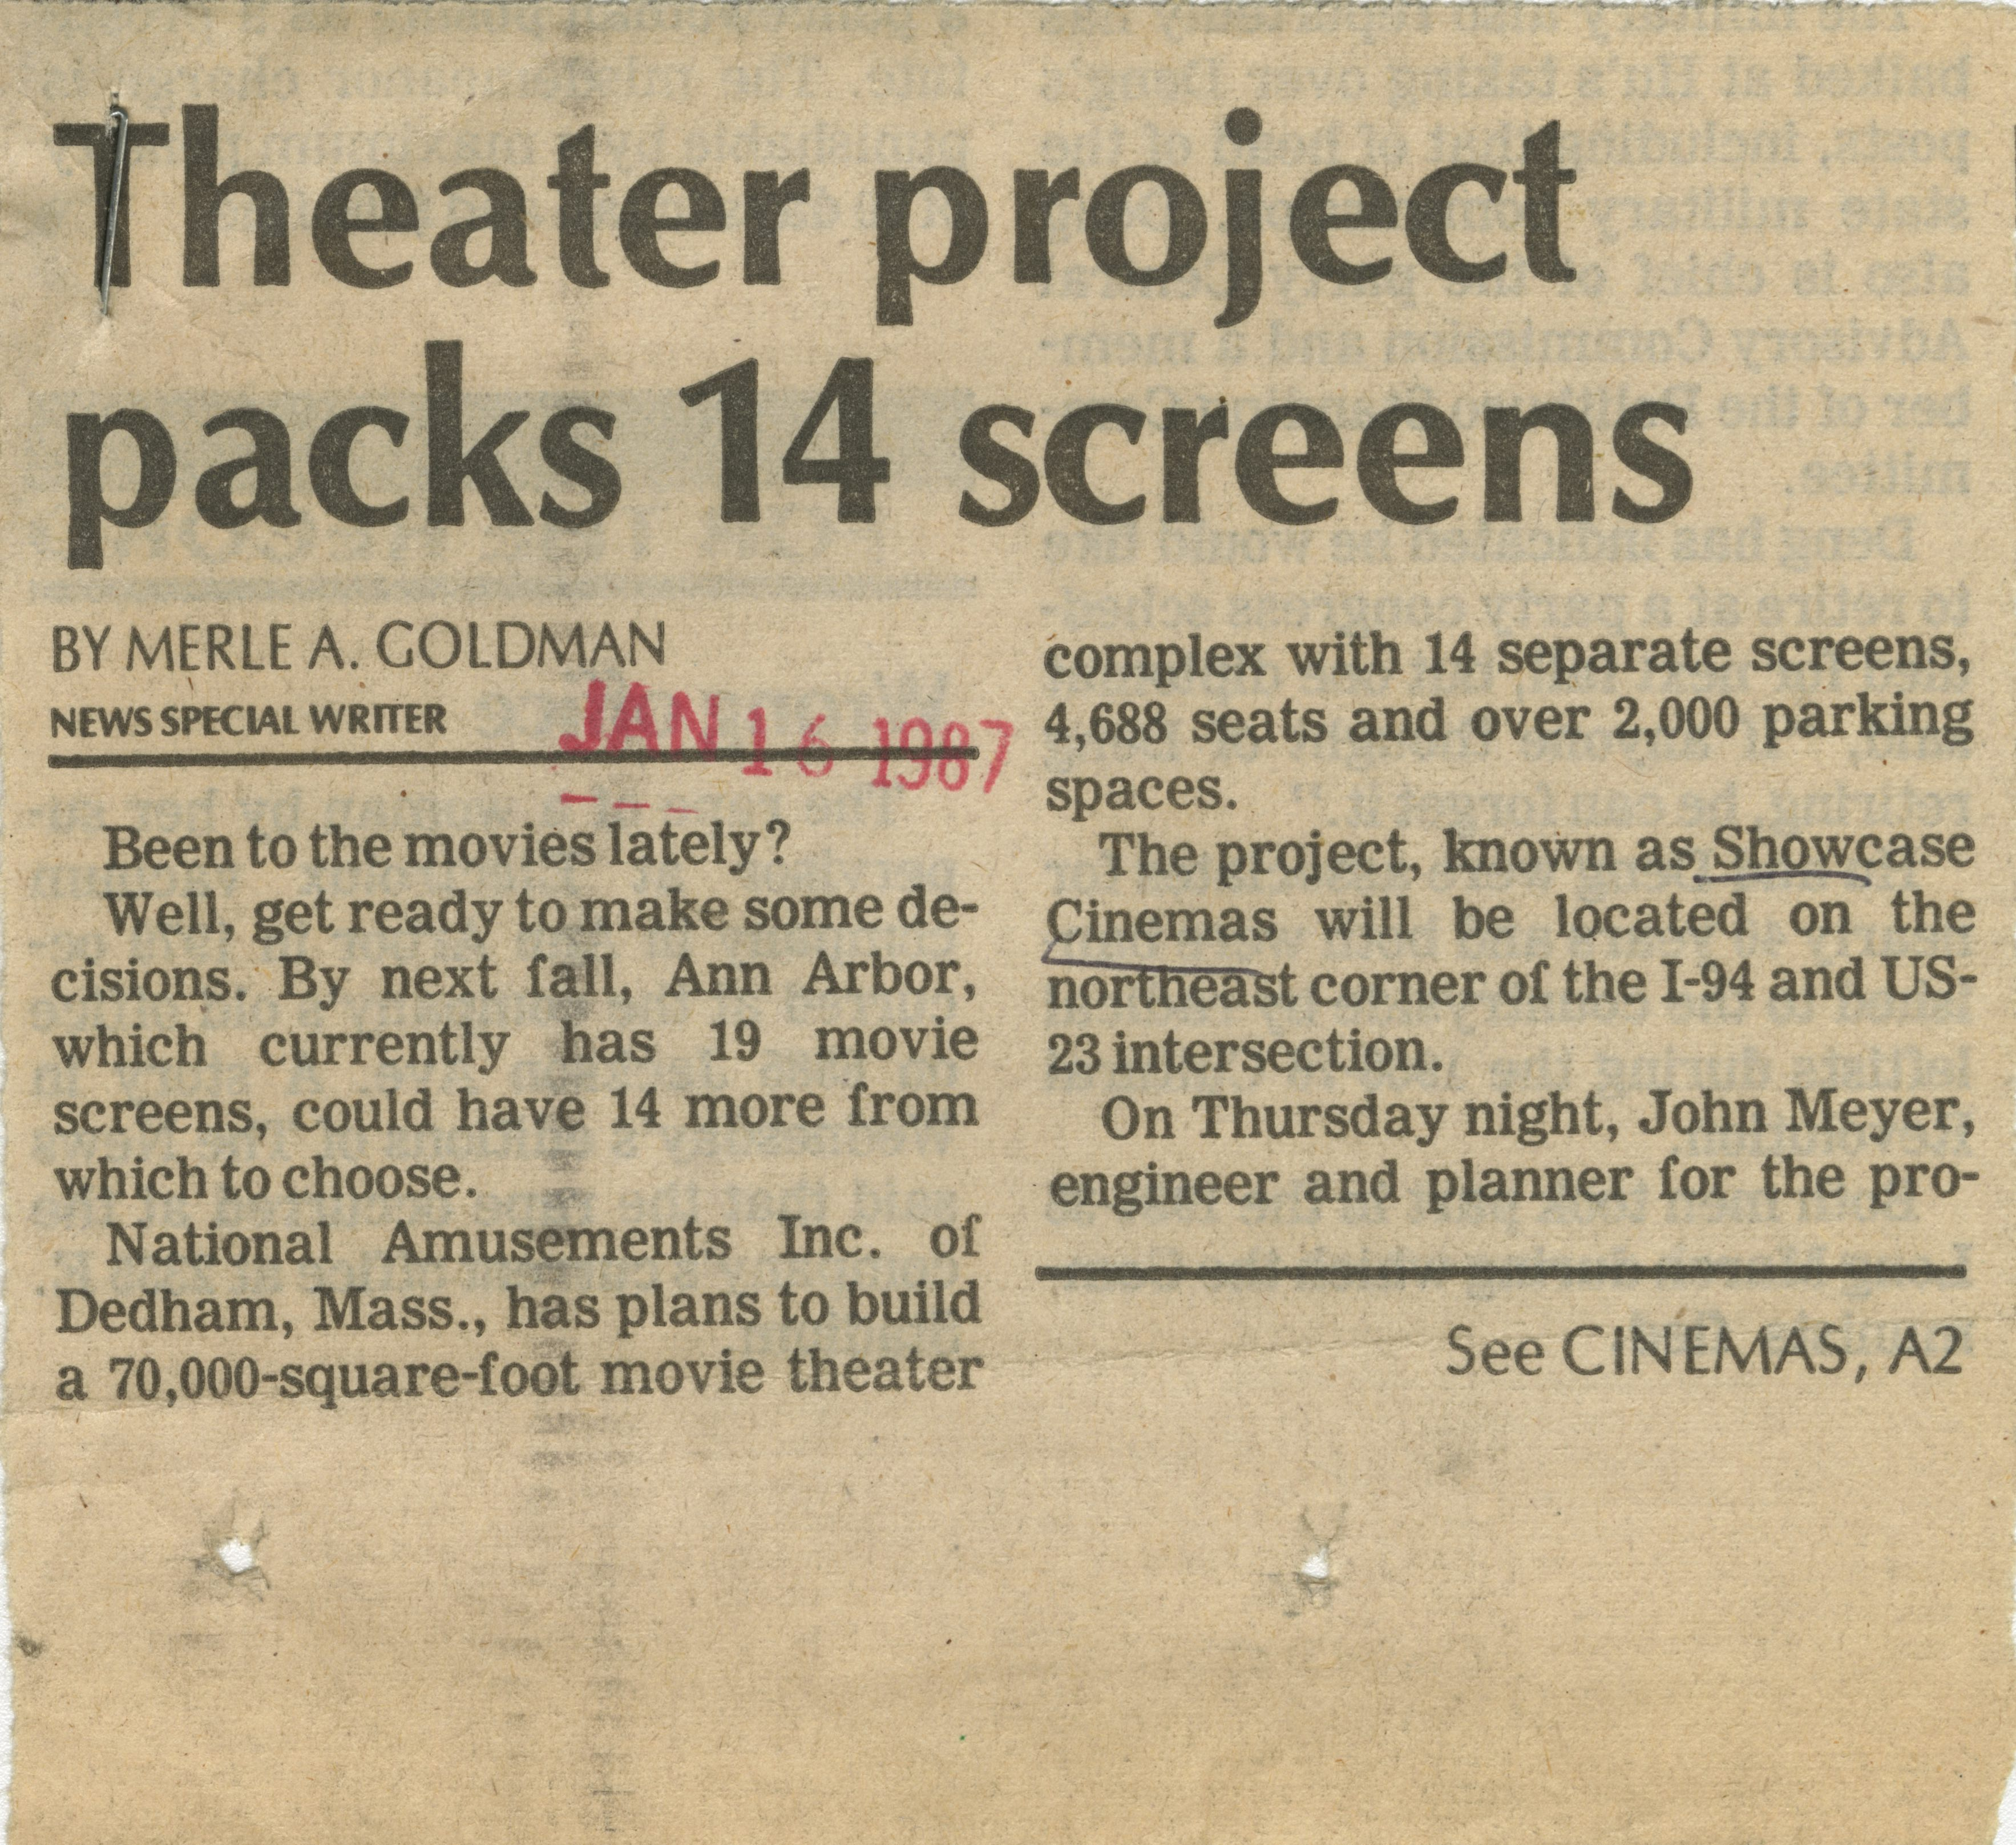 Theater Project Packs 14 Screens image